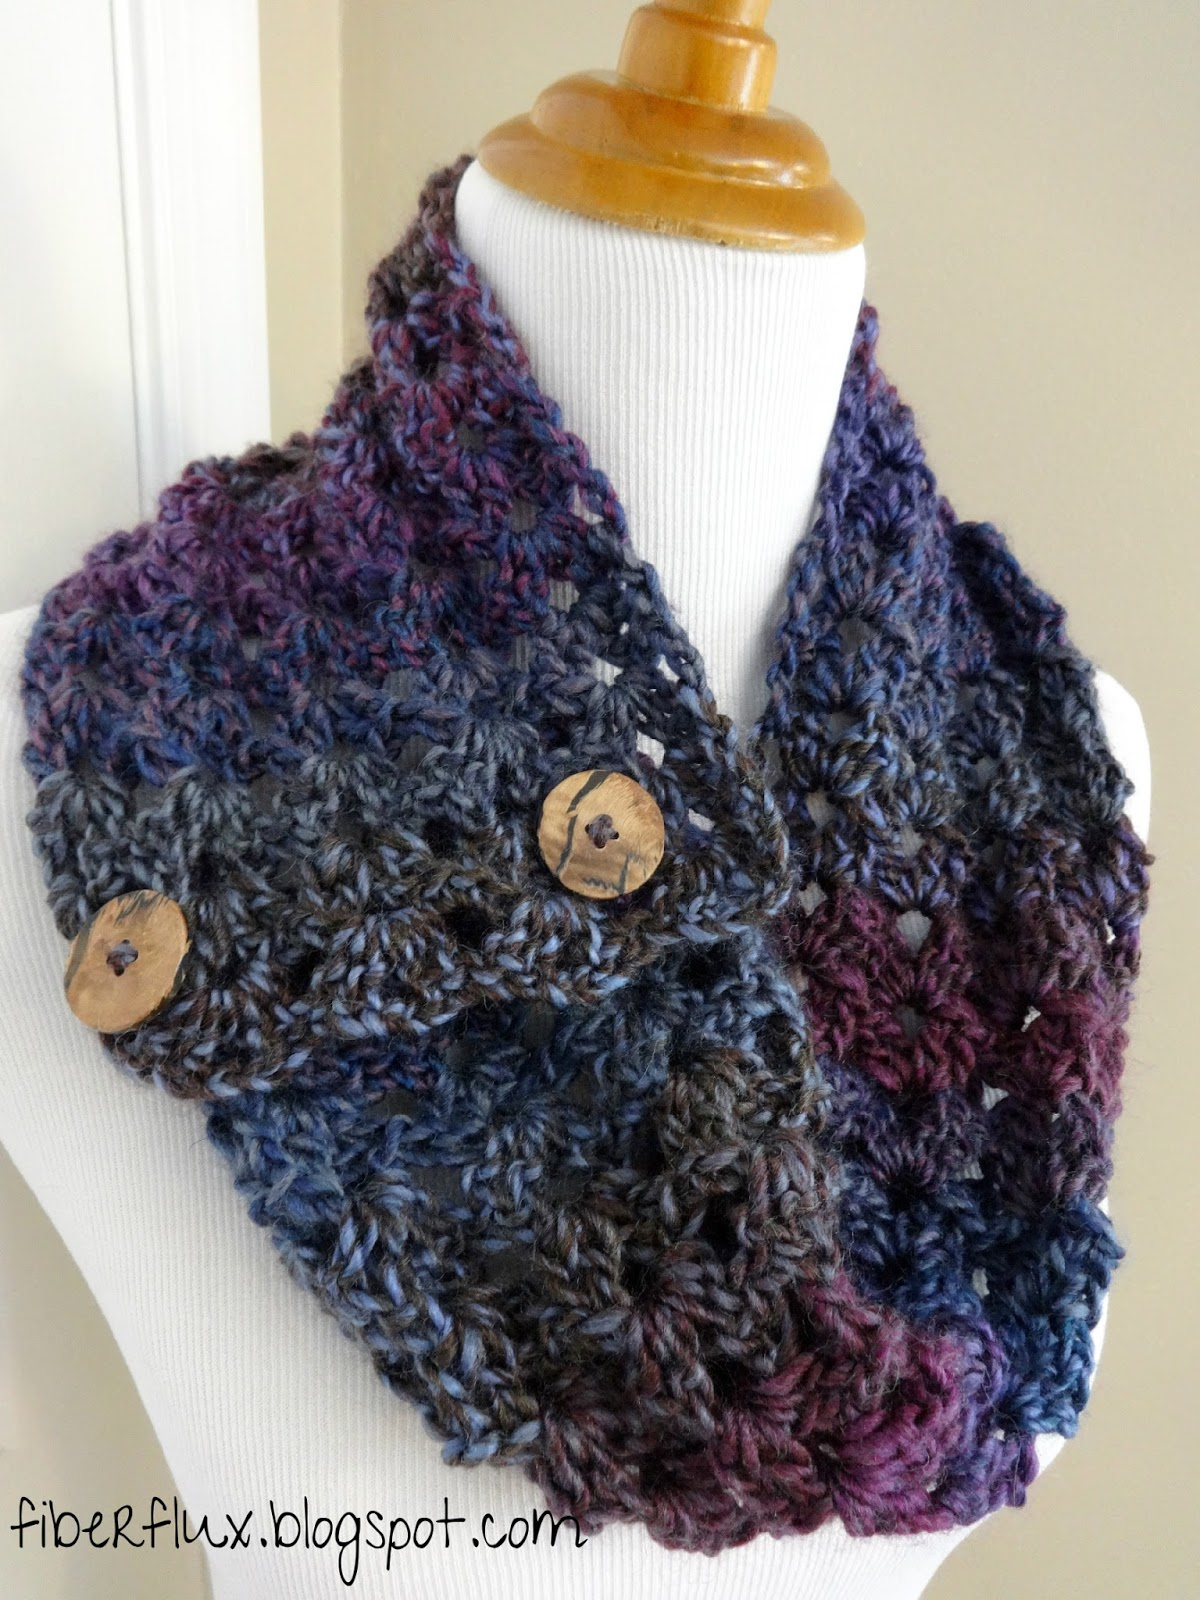 Free Crochet Pattern Button Scarf : Fiber Flux: Free Crochet Pattern...Estelle Button Cowl!